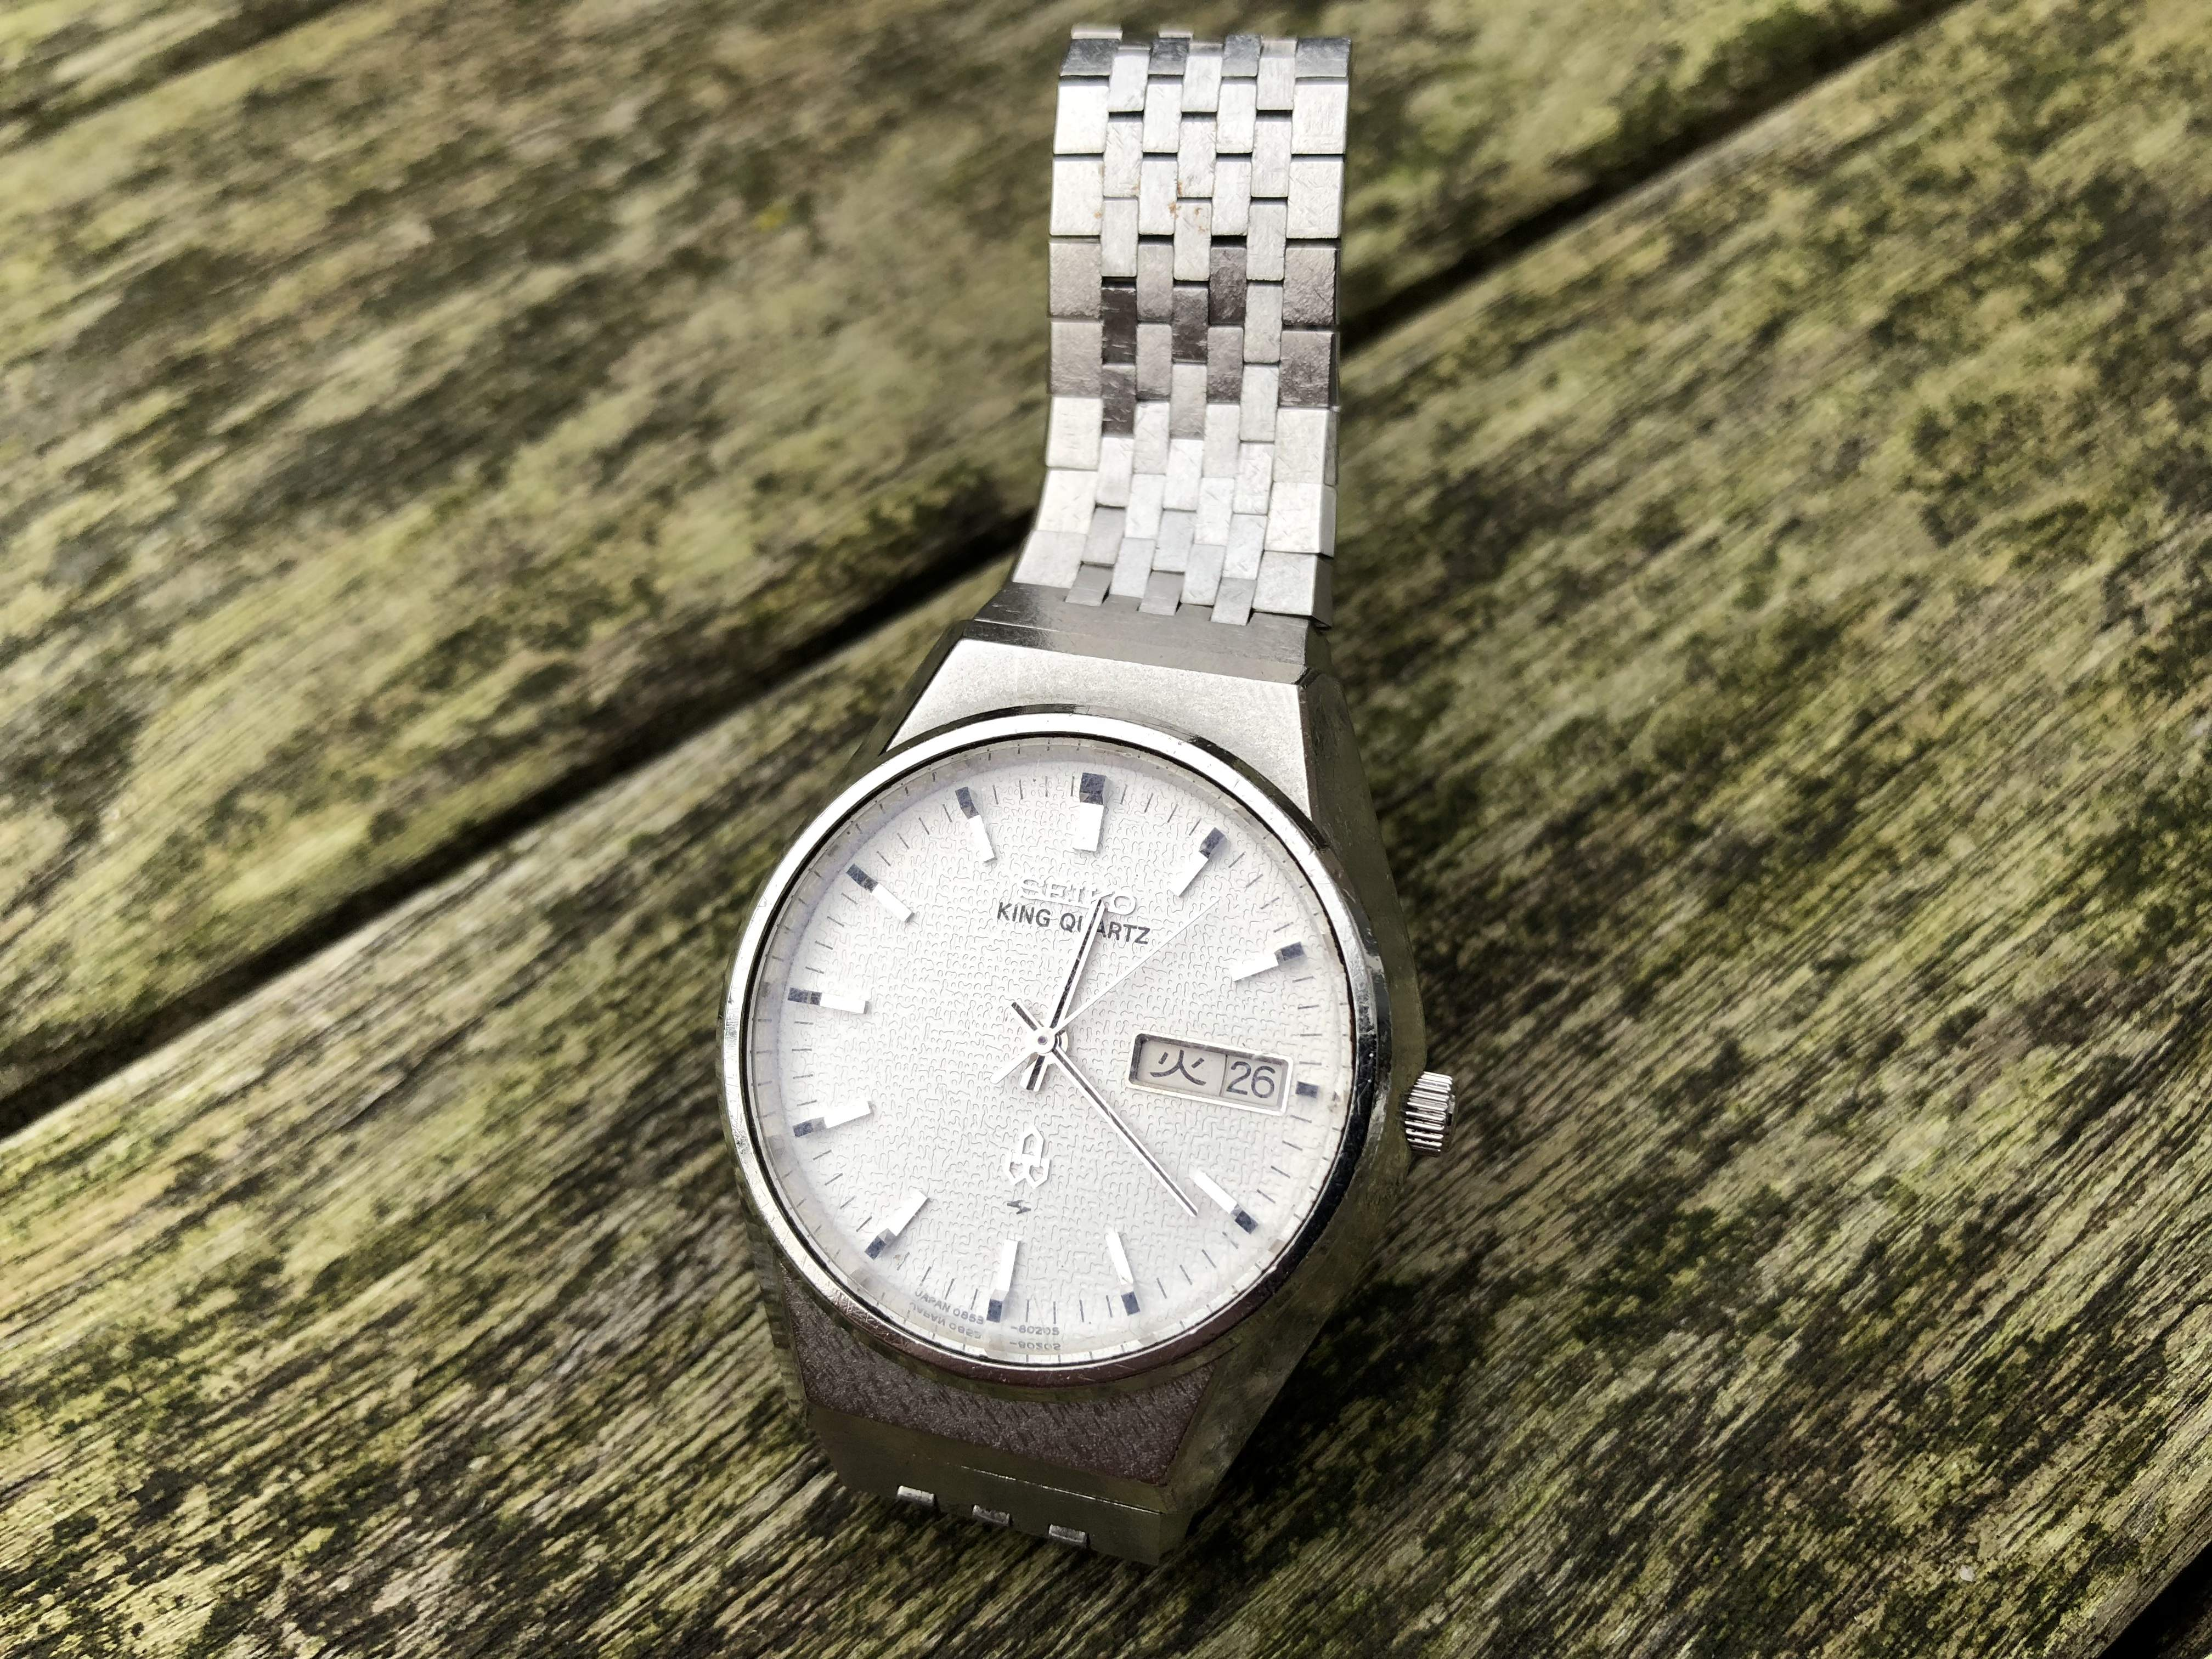 Seiko King Quartz 0853-8020 (sold)